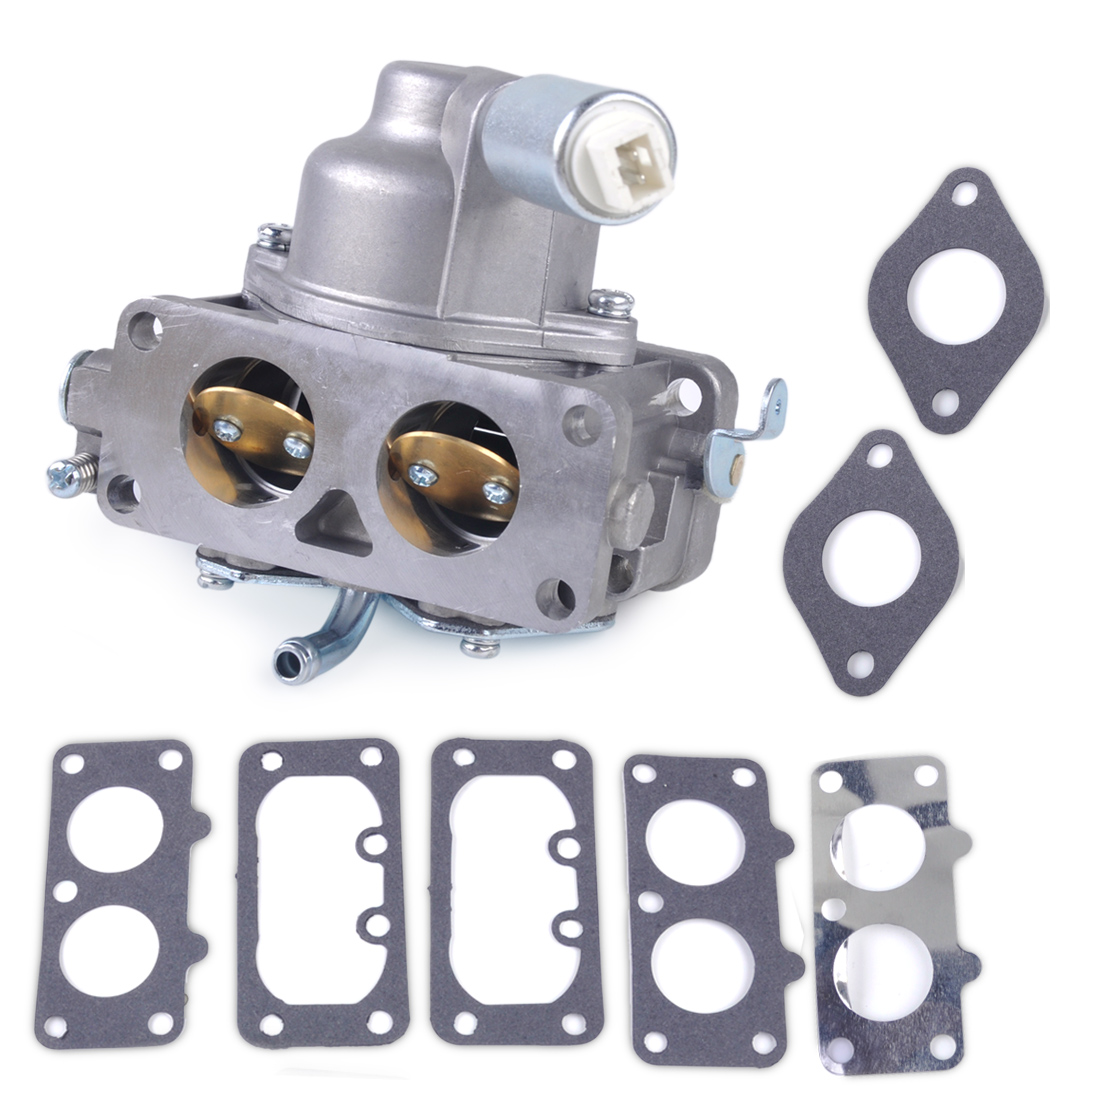 цена на LETAOSK New Carburetor Replaces fit for Briggs & Stratton 791230 699709 499804 Manual Choke Accessories